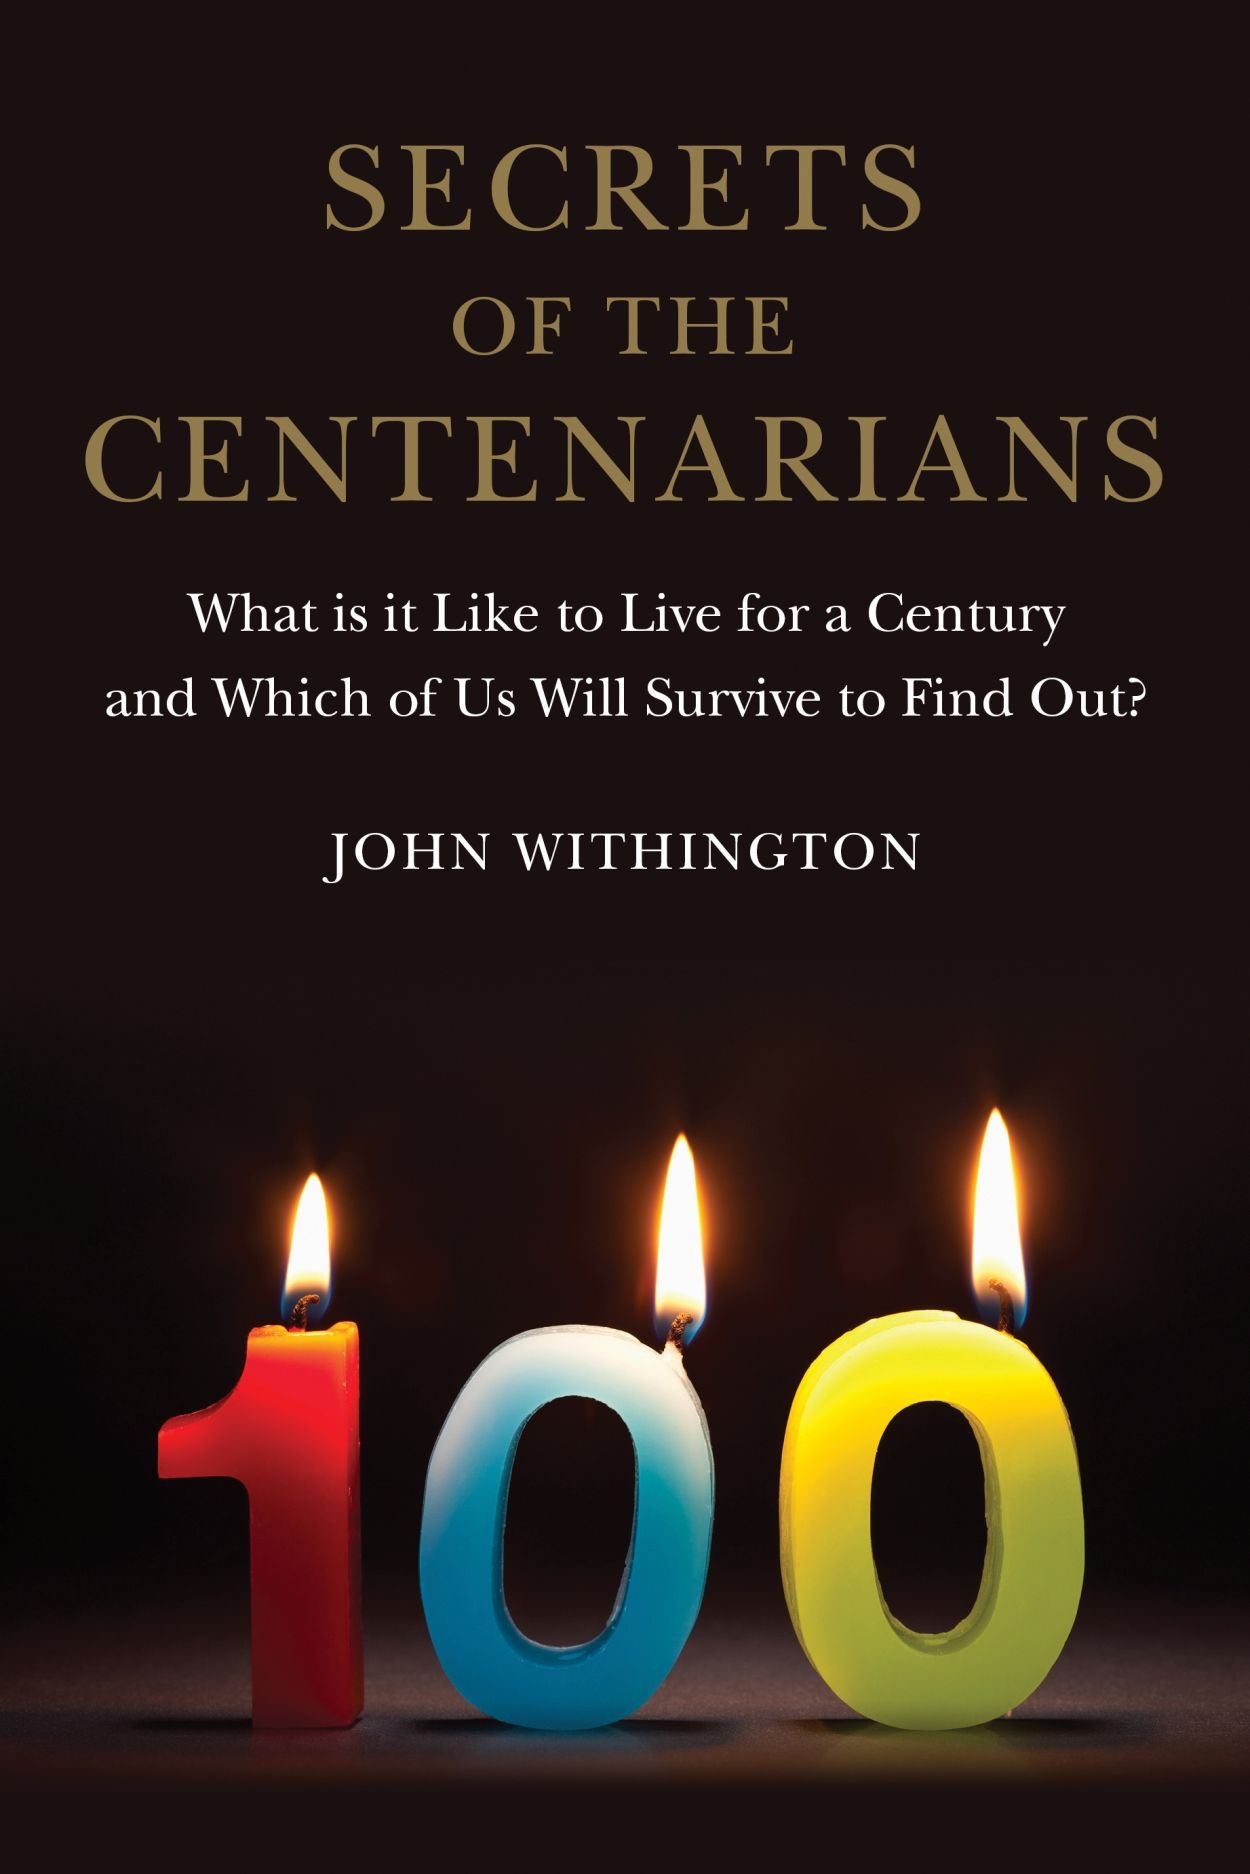 Secrets of the centenarians what is it like to live for a century secrets of the centenarians addthis sharing buttons thecheapjerseys Image collections